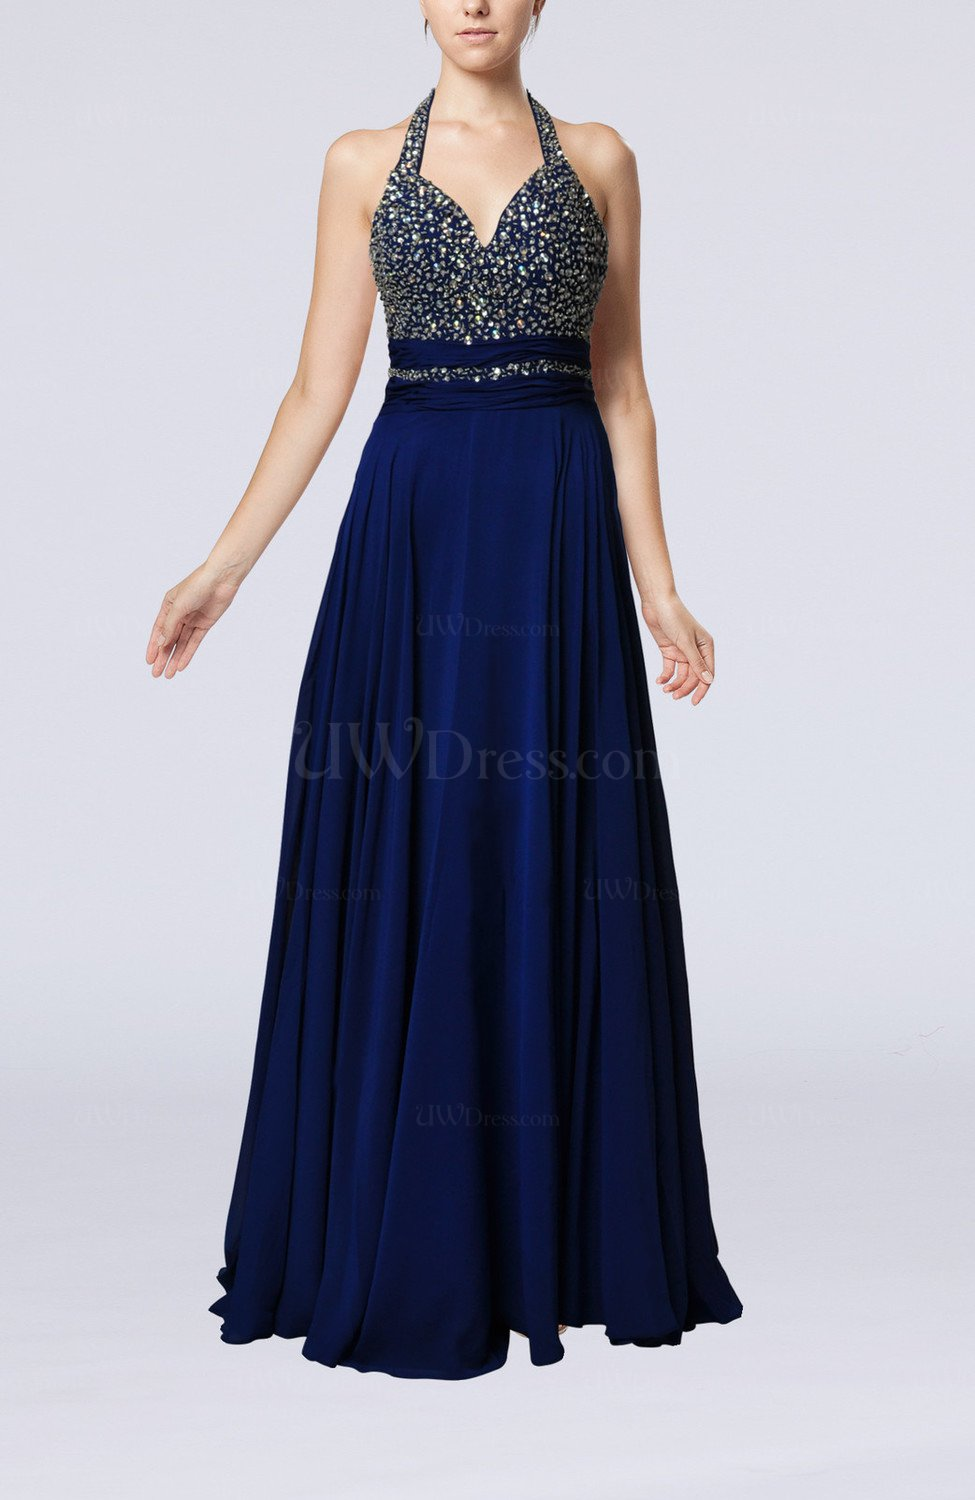 Electric Blue Wedding Guest Dresses : Electric blue glamorous halter sleeveless backless sweep train wedding